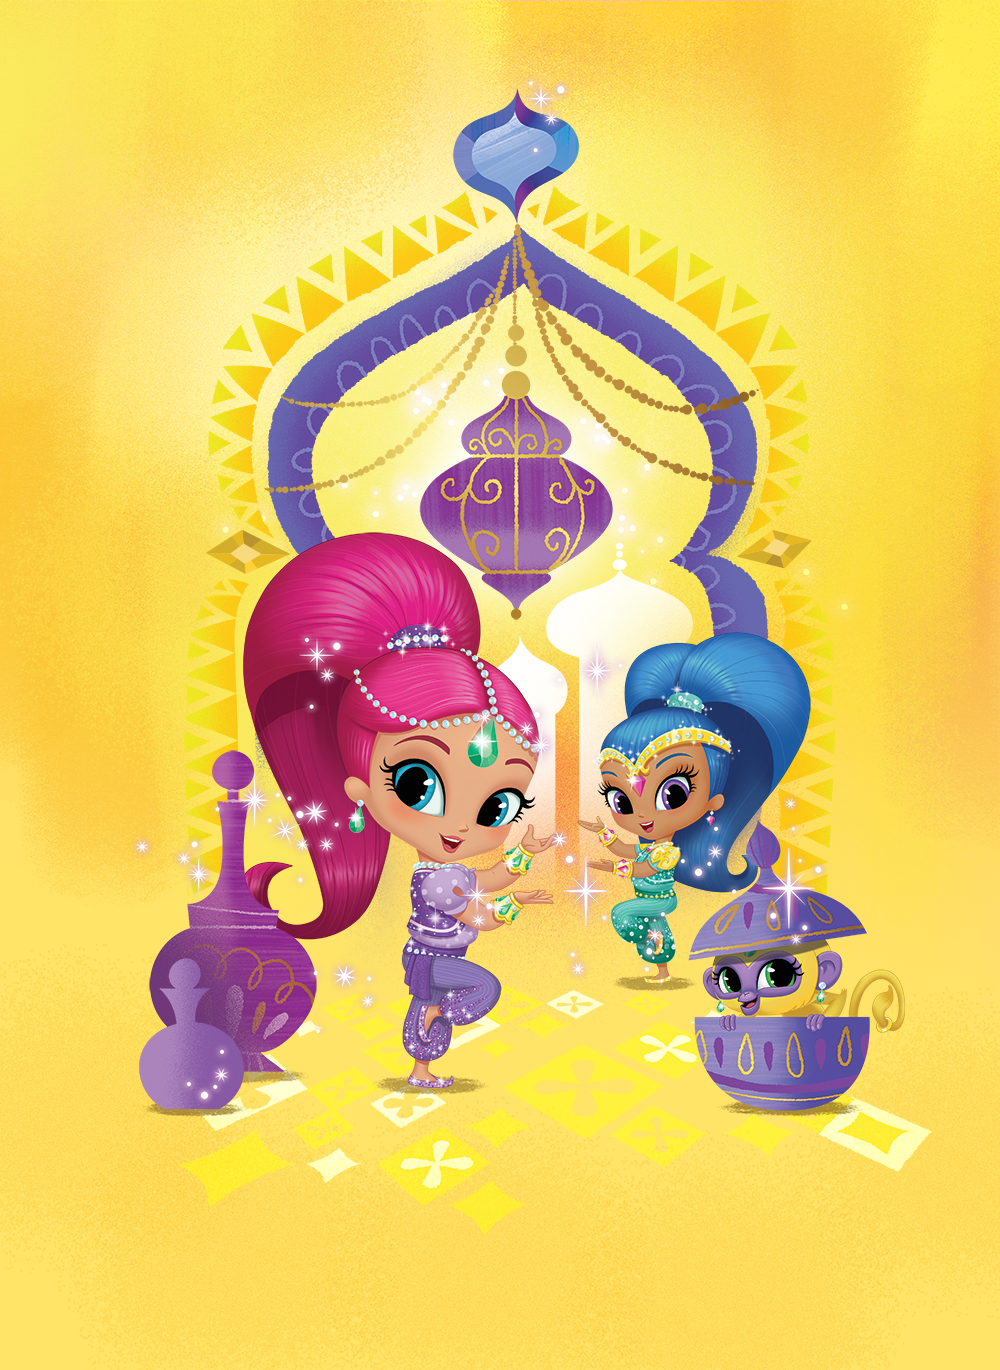 Shimmer And Shine Magical Genie Games Free Download : shimmer, shine, magical, genie, games, download, Zahramay!, Friends, Watch, Shimmer, Shine, NickJr.com!, Shine,, Shimmer,